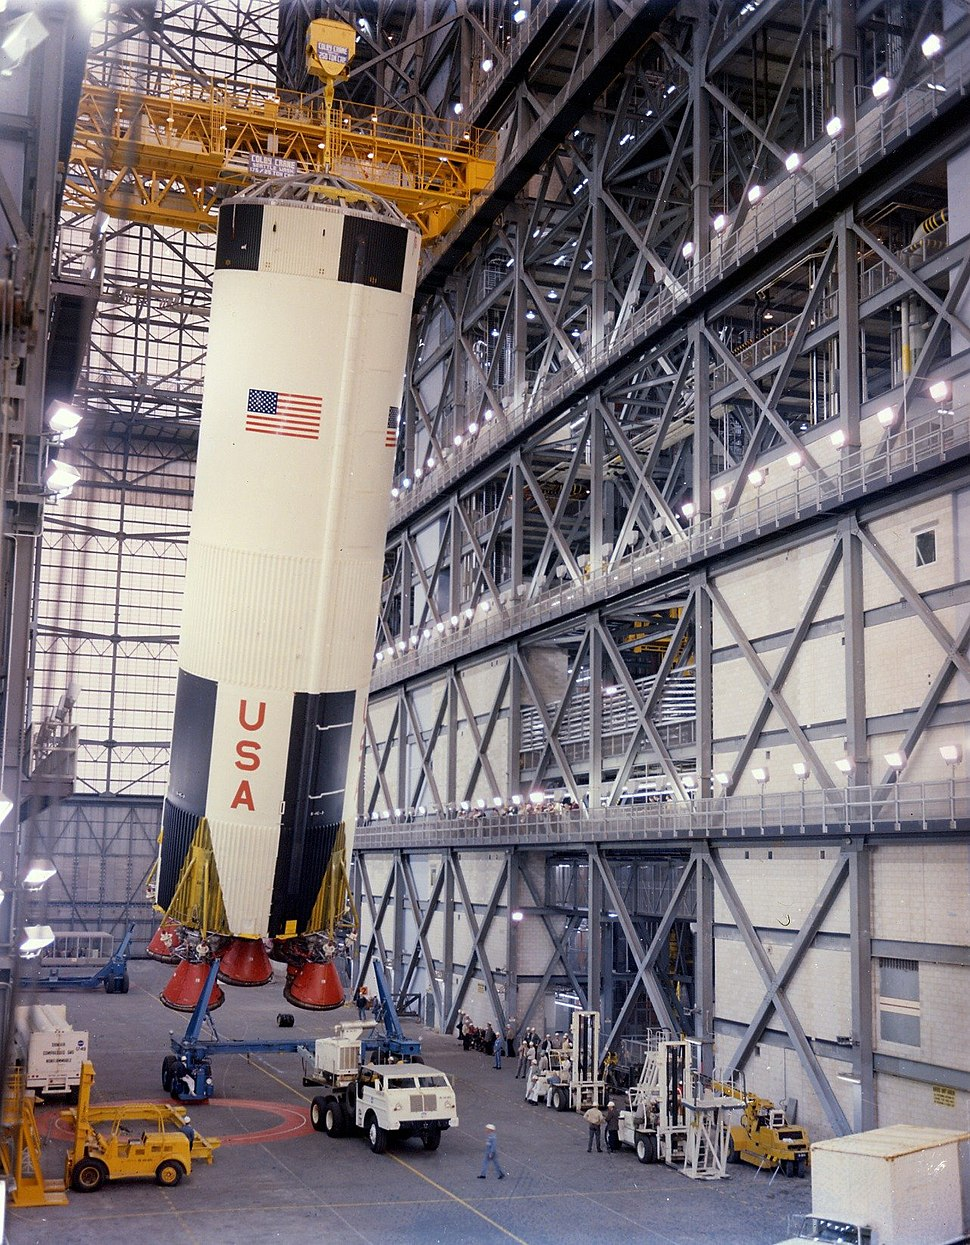 Apollo 8 first stage in the Vehicle Assembly Building